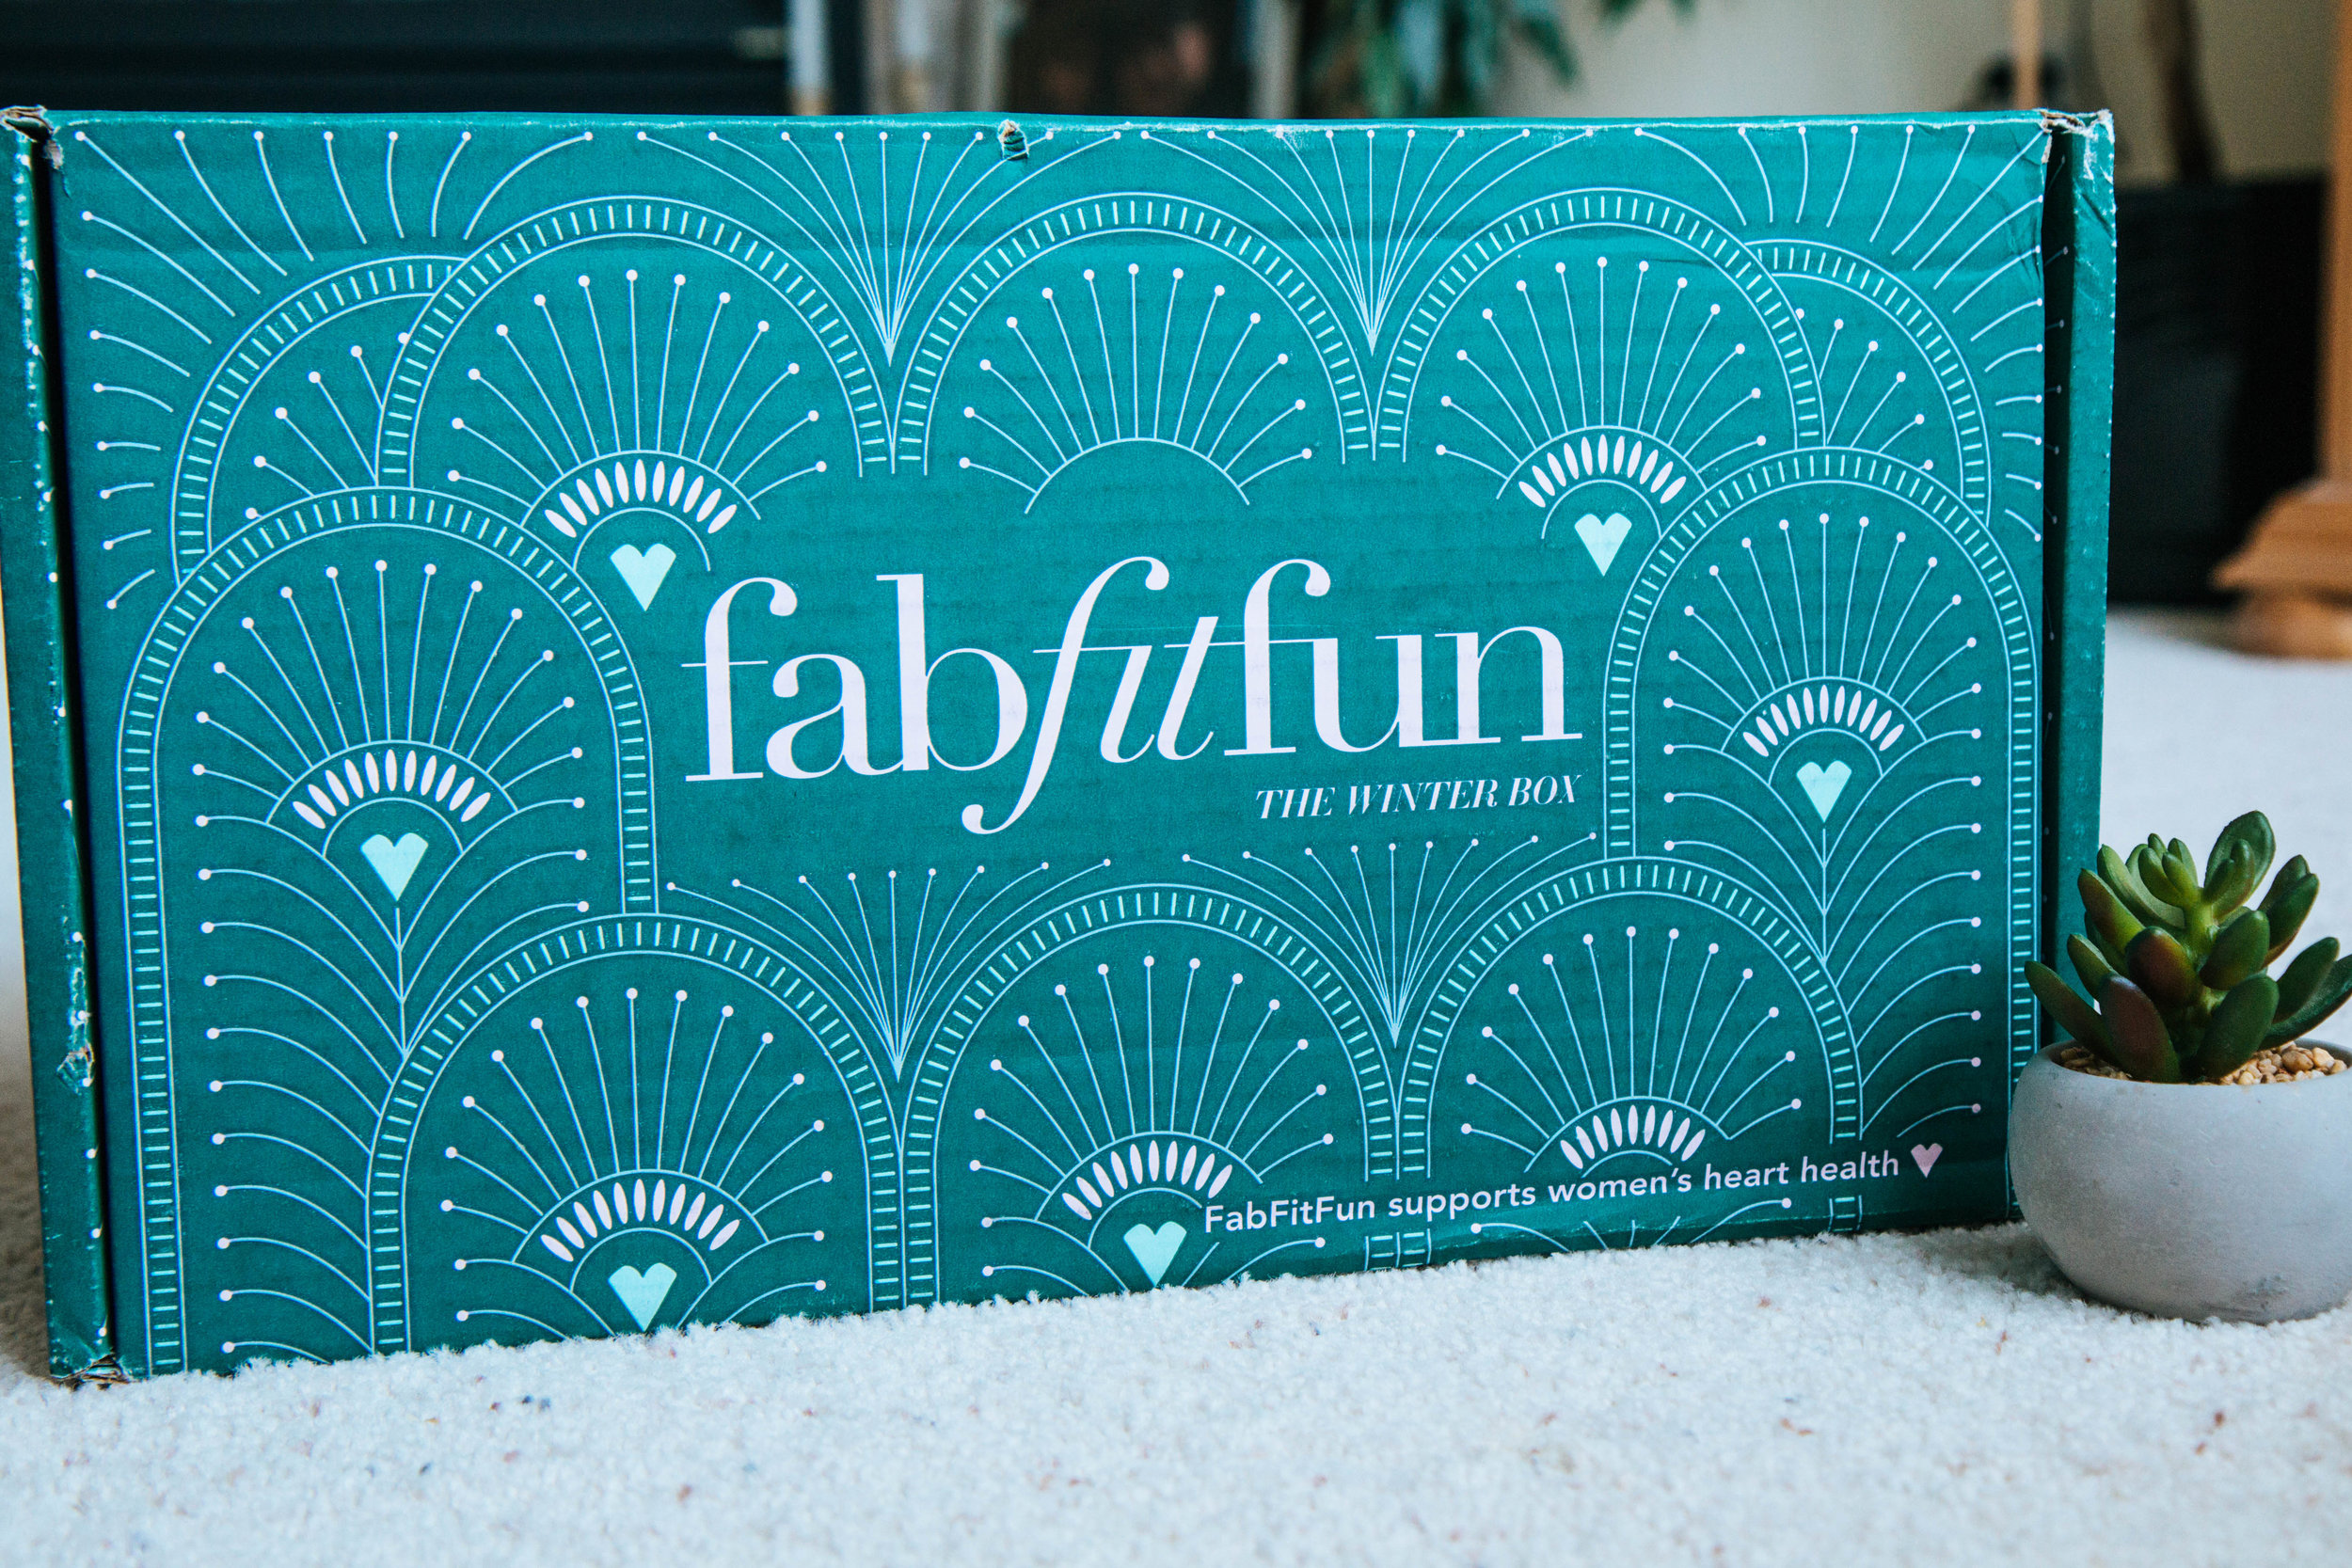 A Review of the Fab Fit Fun Winter Box from 2017